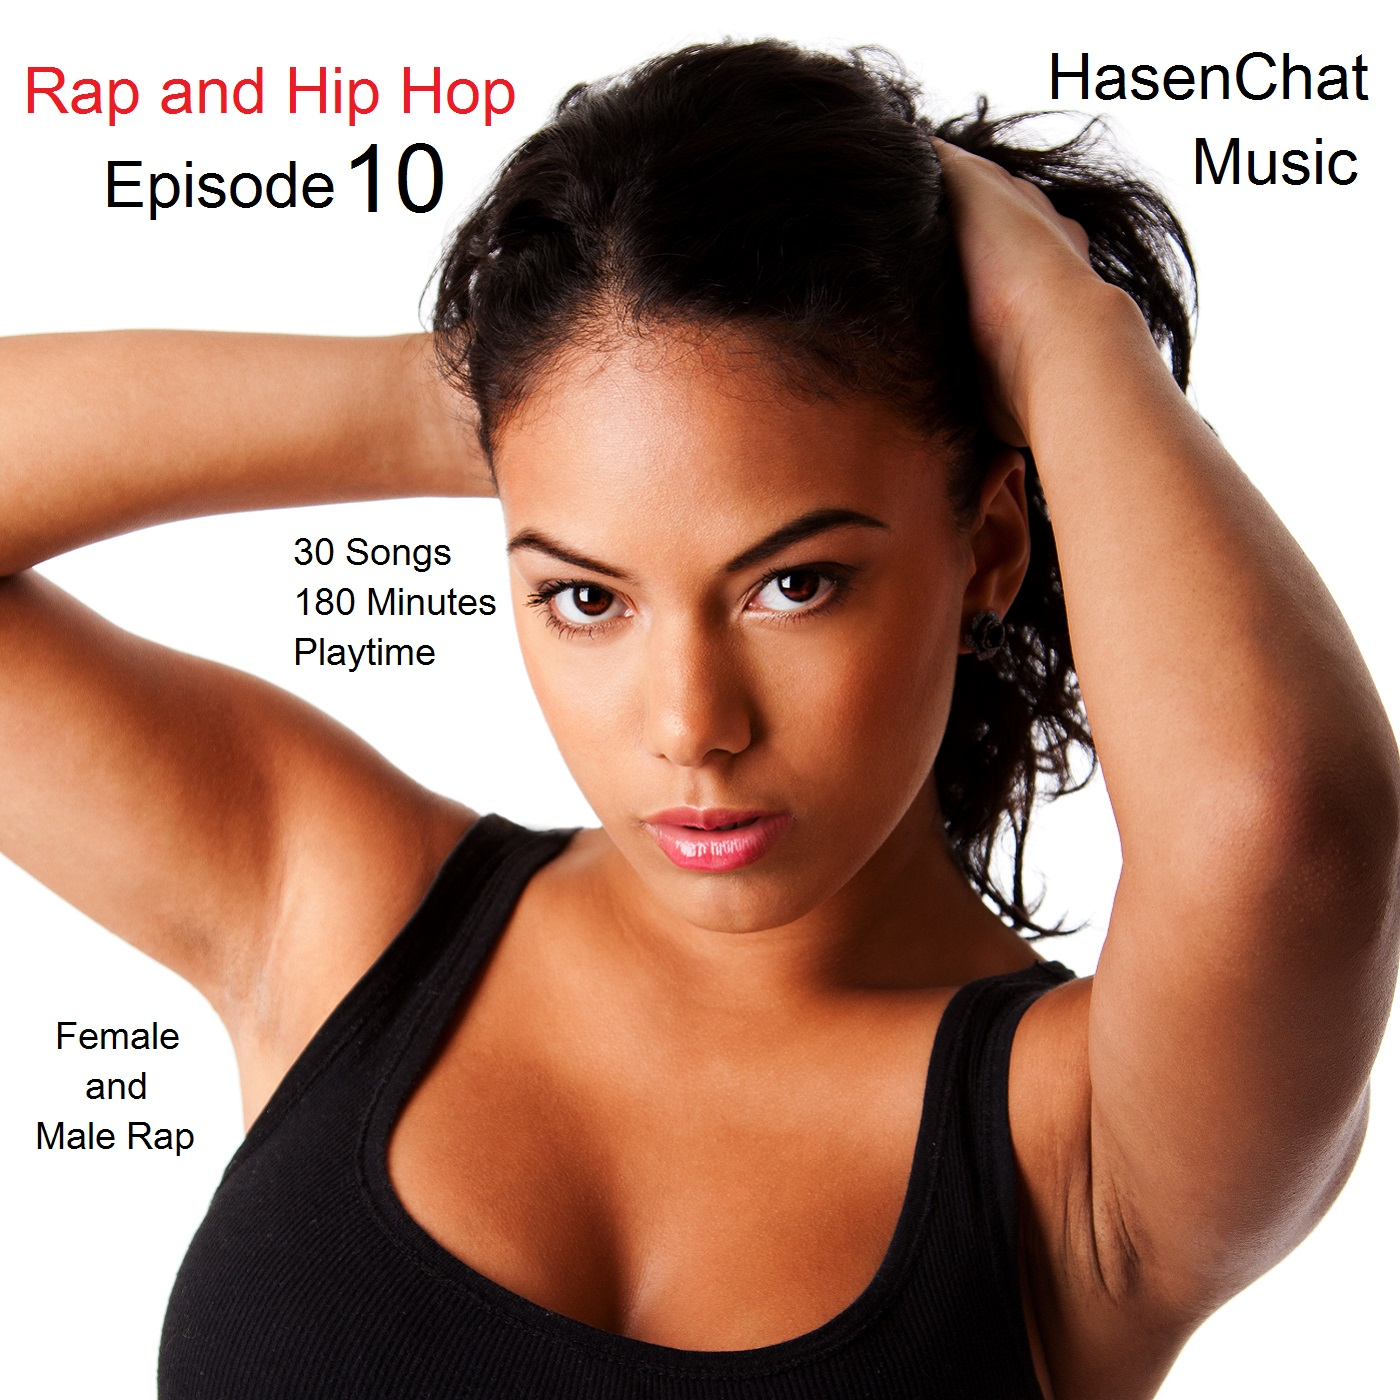 HasenChat Music - Rap and Hip Hop - Episode 10